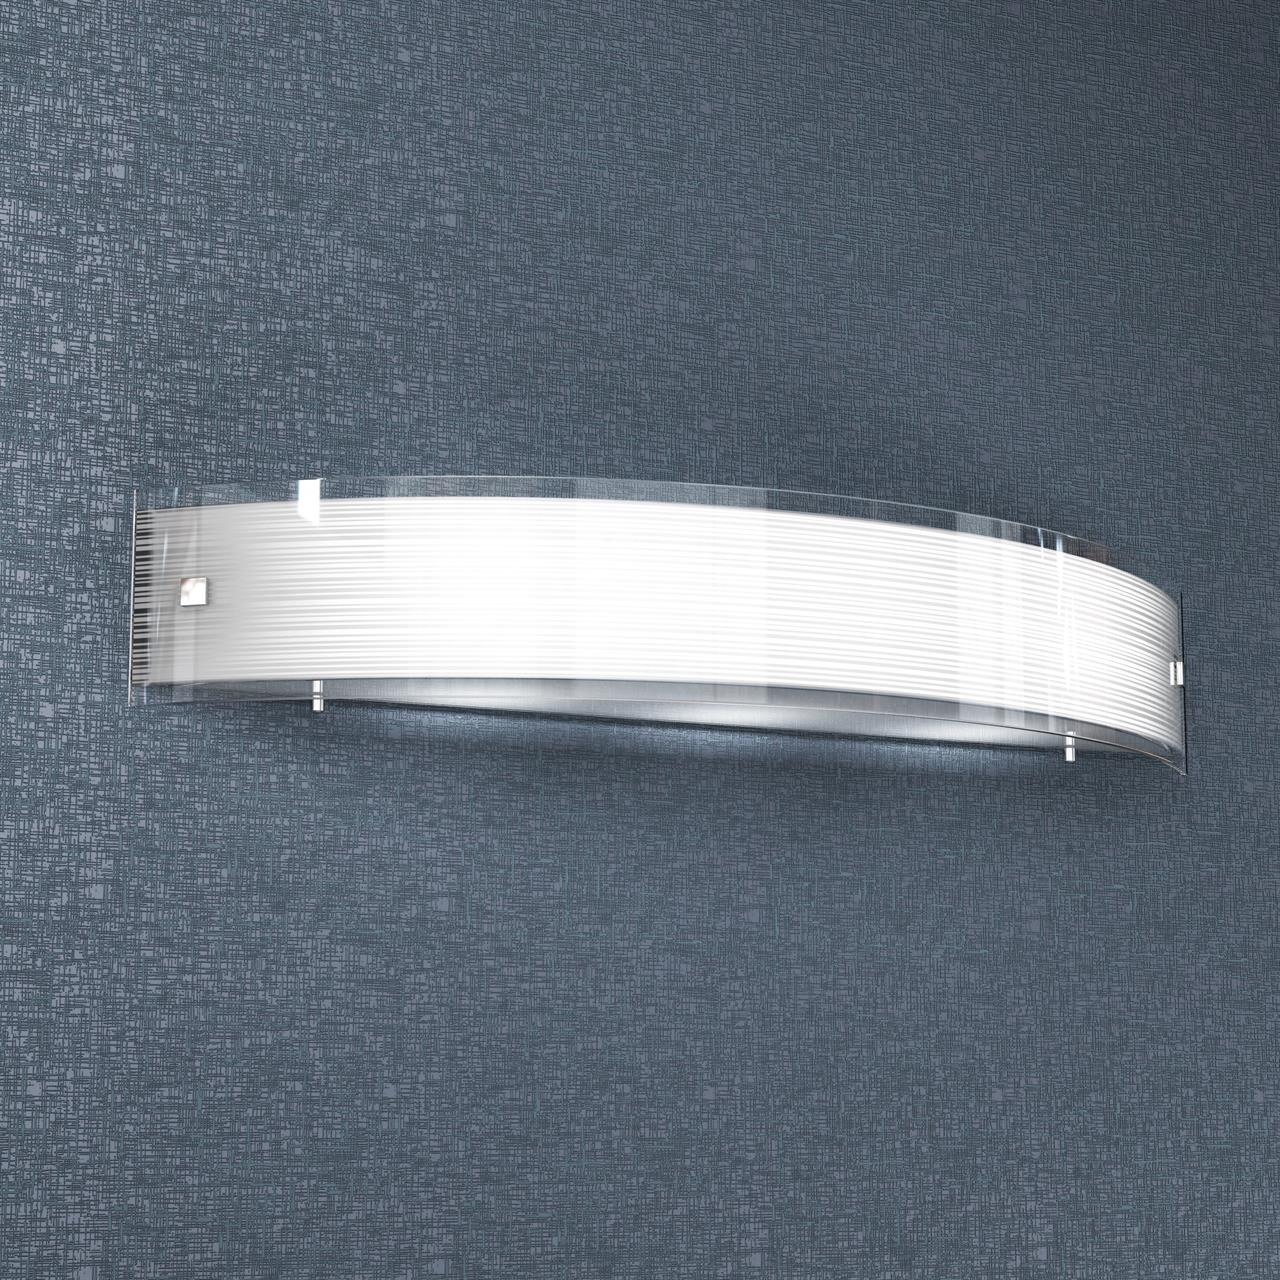 APPLIQUE A 3 LUCI LINEAR MAD 1075/A70 BIANCO